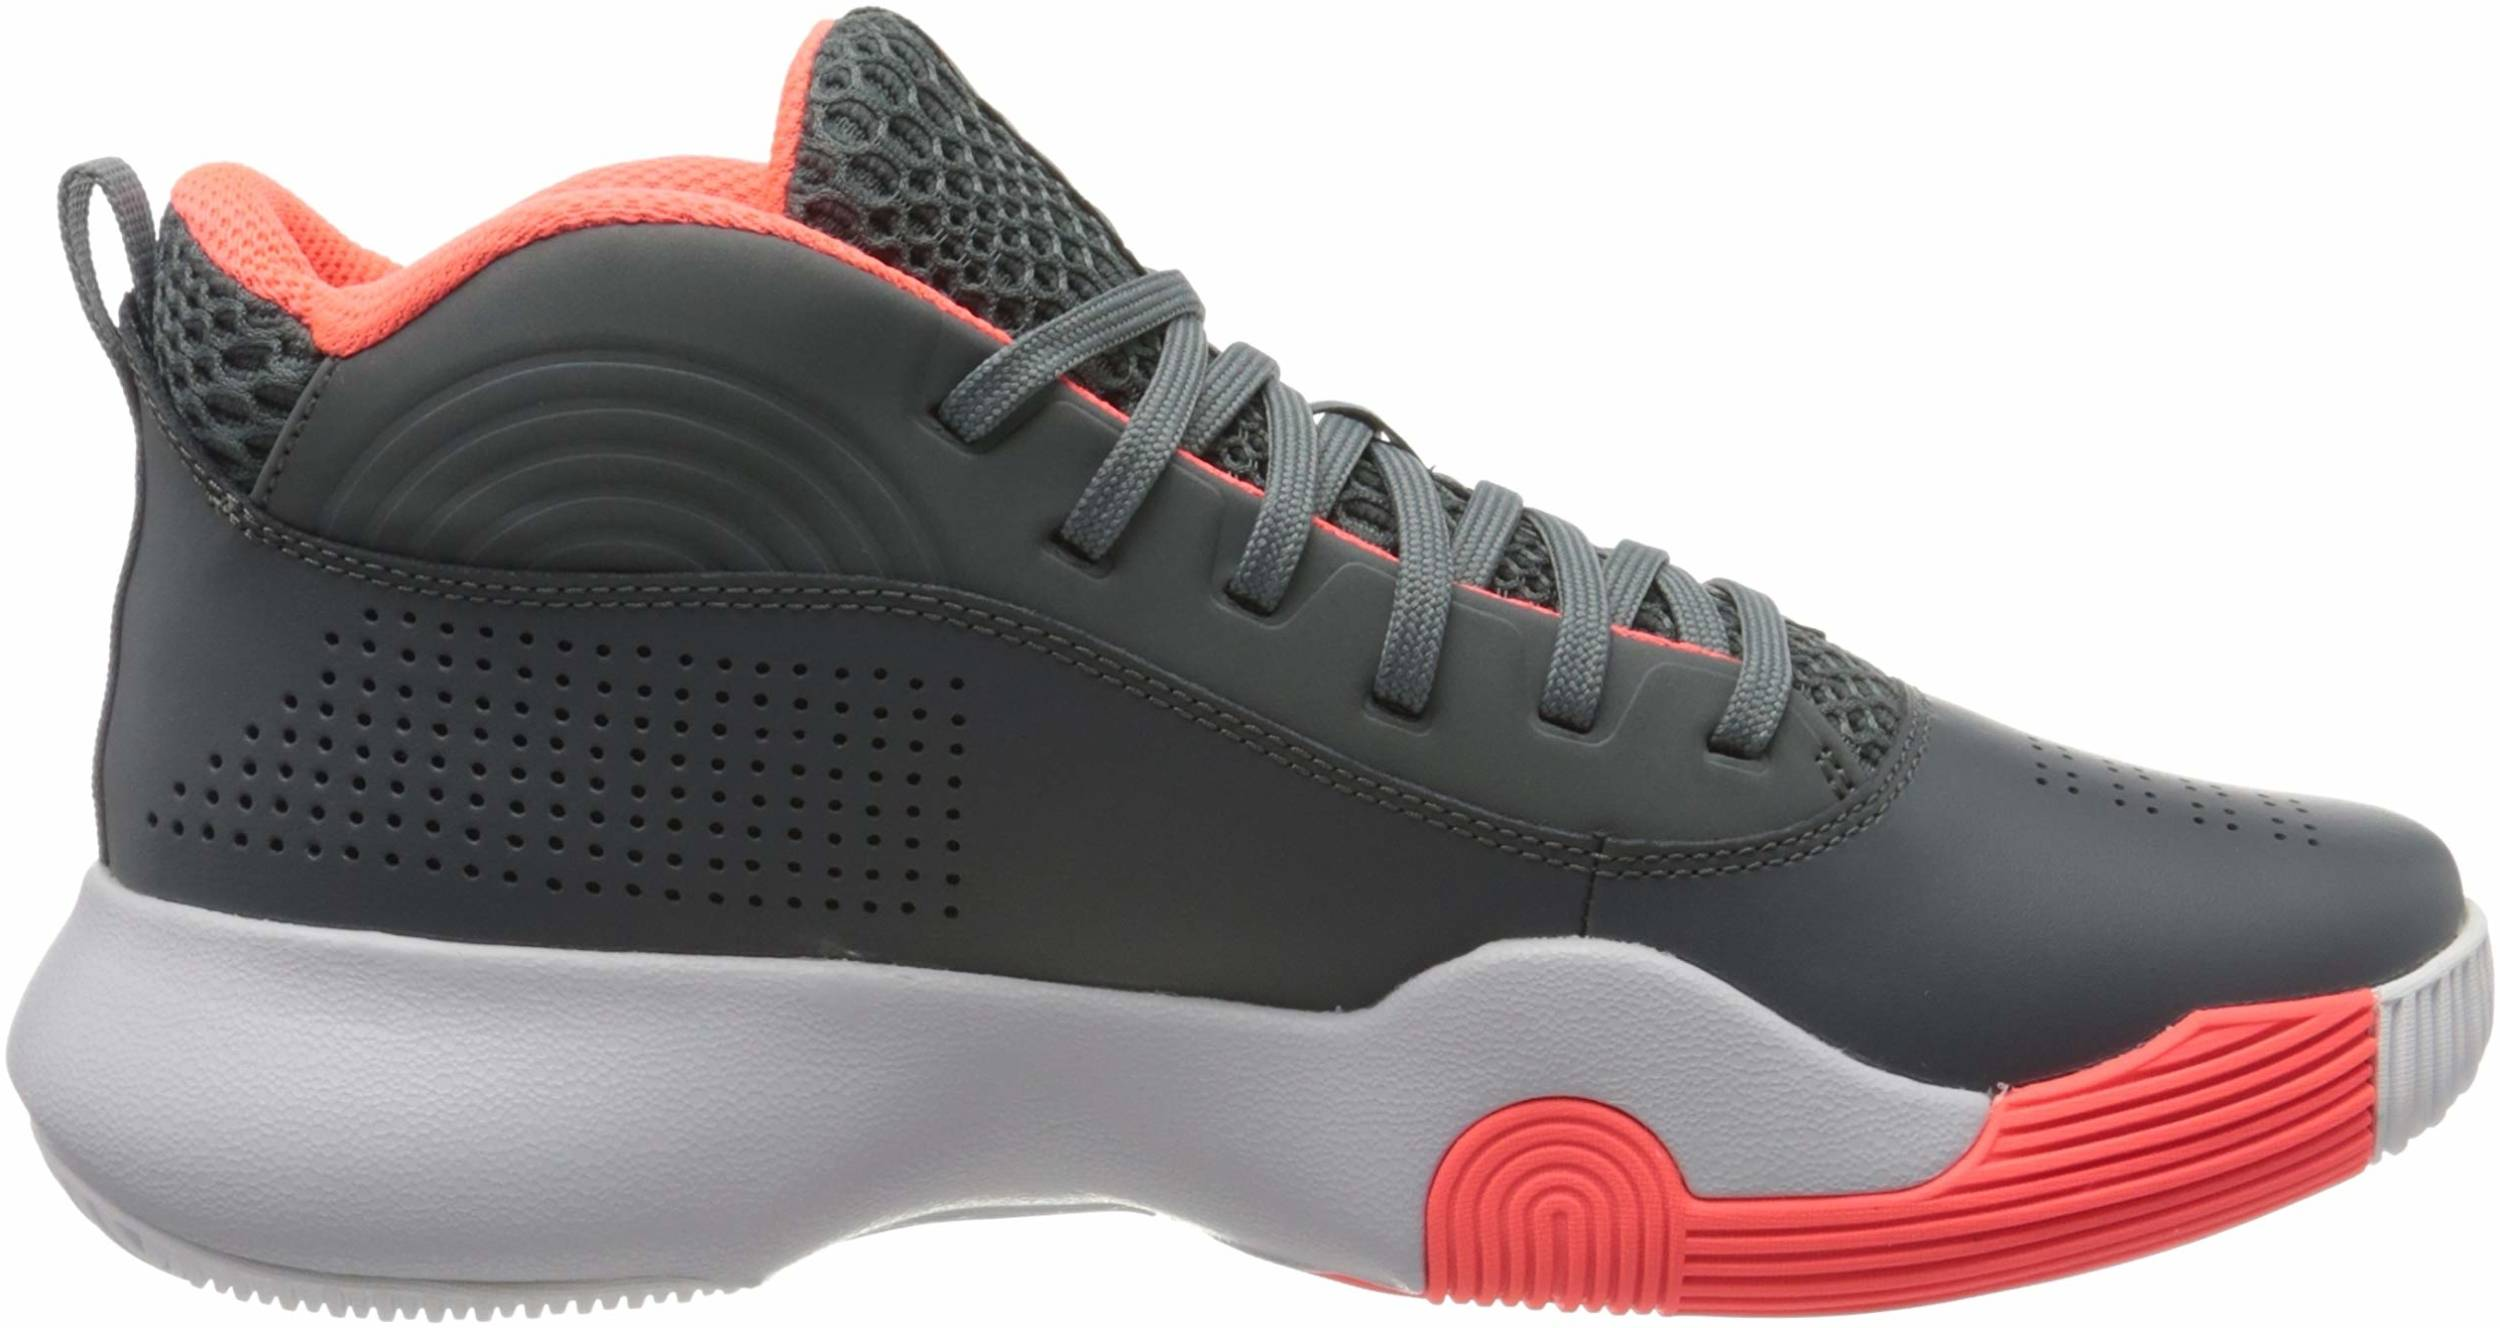 Review of Under Armour Lockdown 4